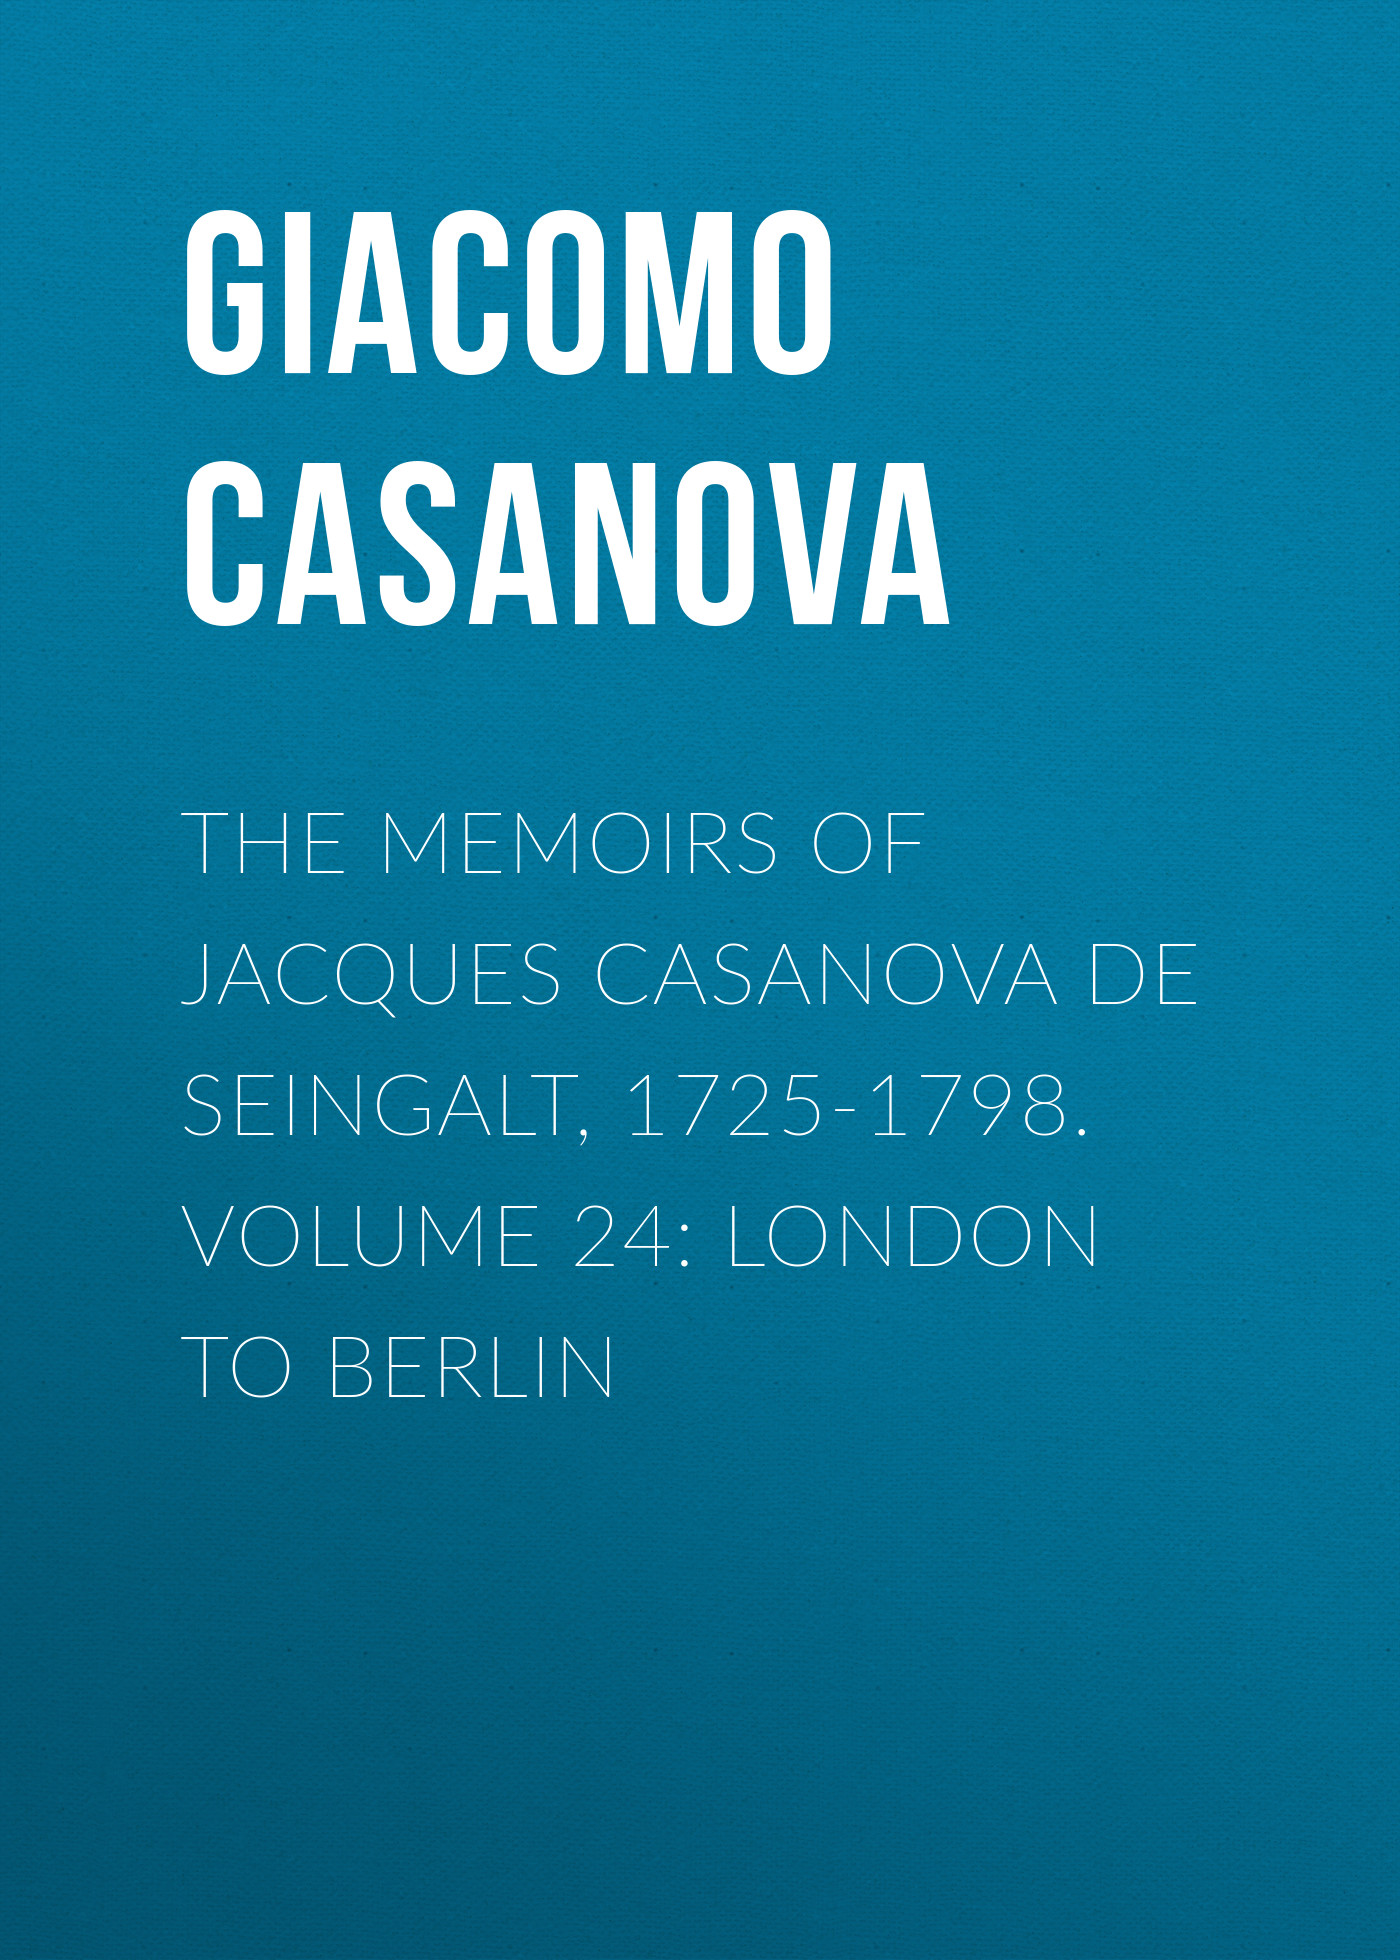 Giacomo Casanova The Memoirs of Jacques Casanova de Seingalt, 1725-1798. Volume 24: London to Berlin шумовка gipfel 6345 33см